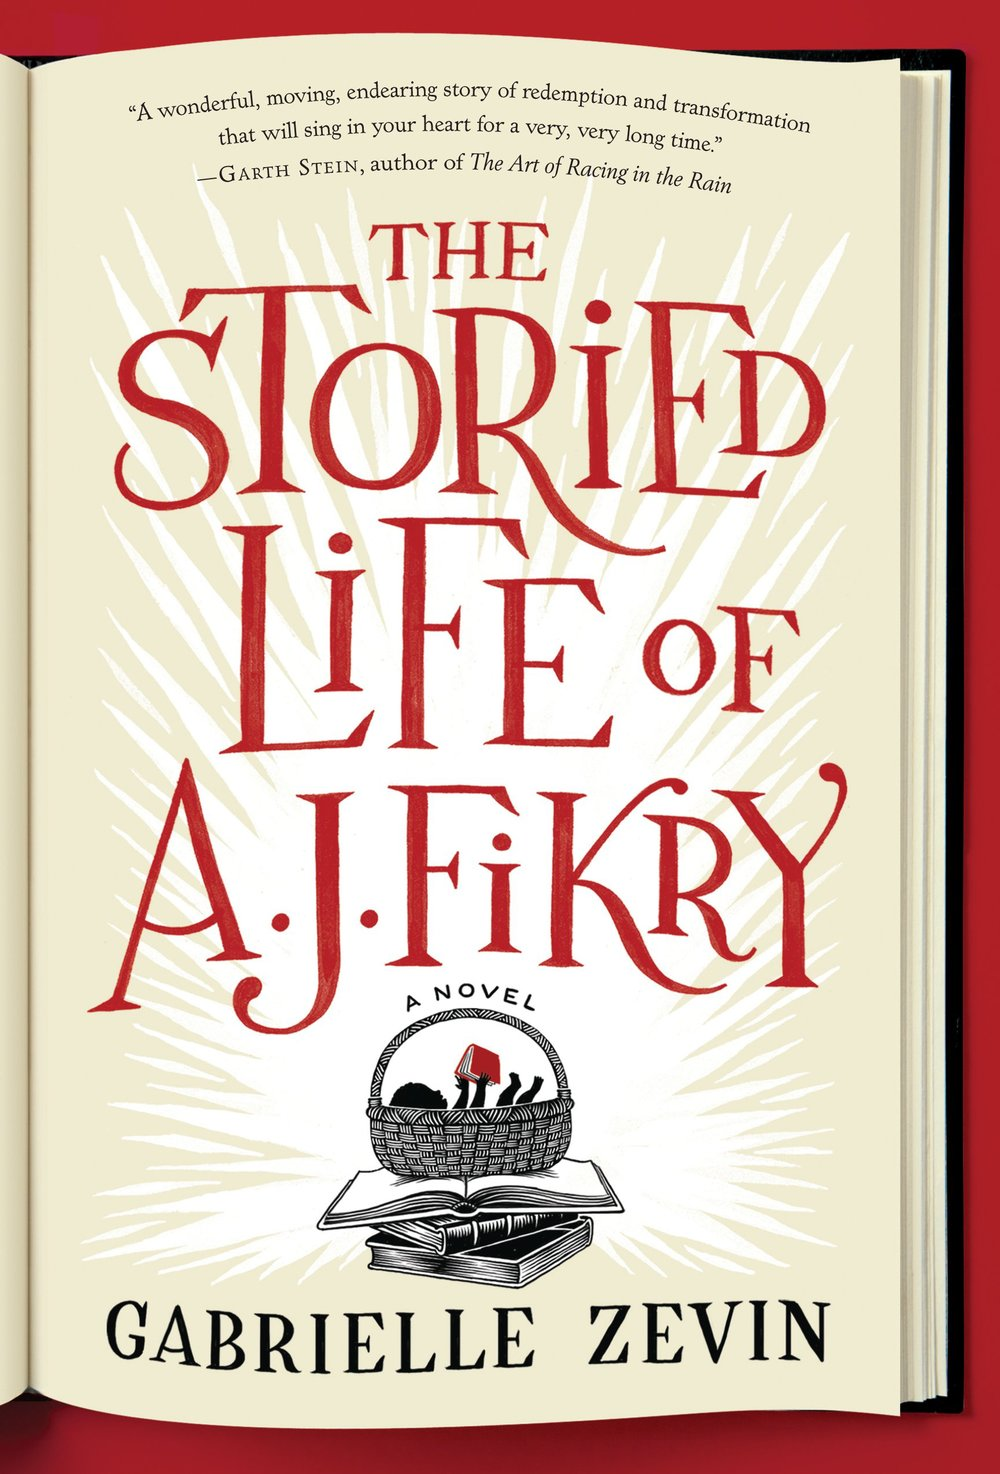 The Storied Life of AJ Fikry  by Gabrielle Zevin | Clear Eyes, Full Shelves